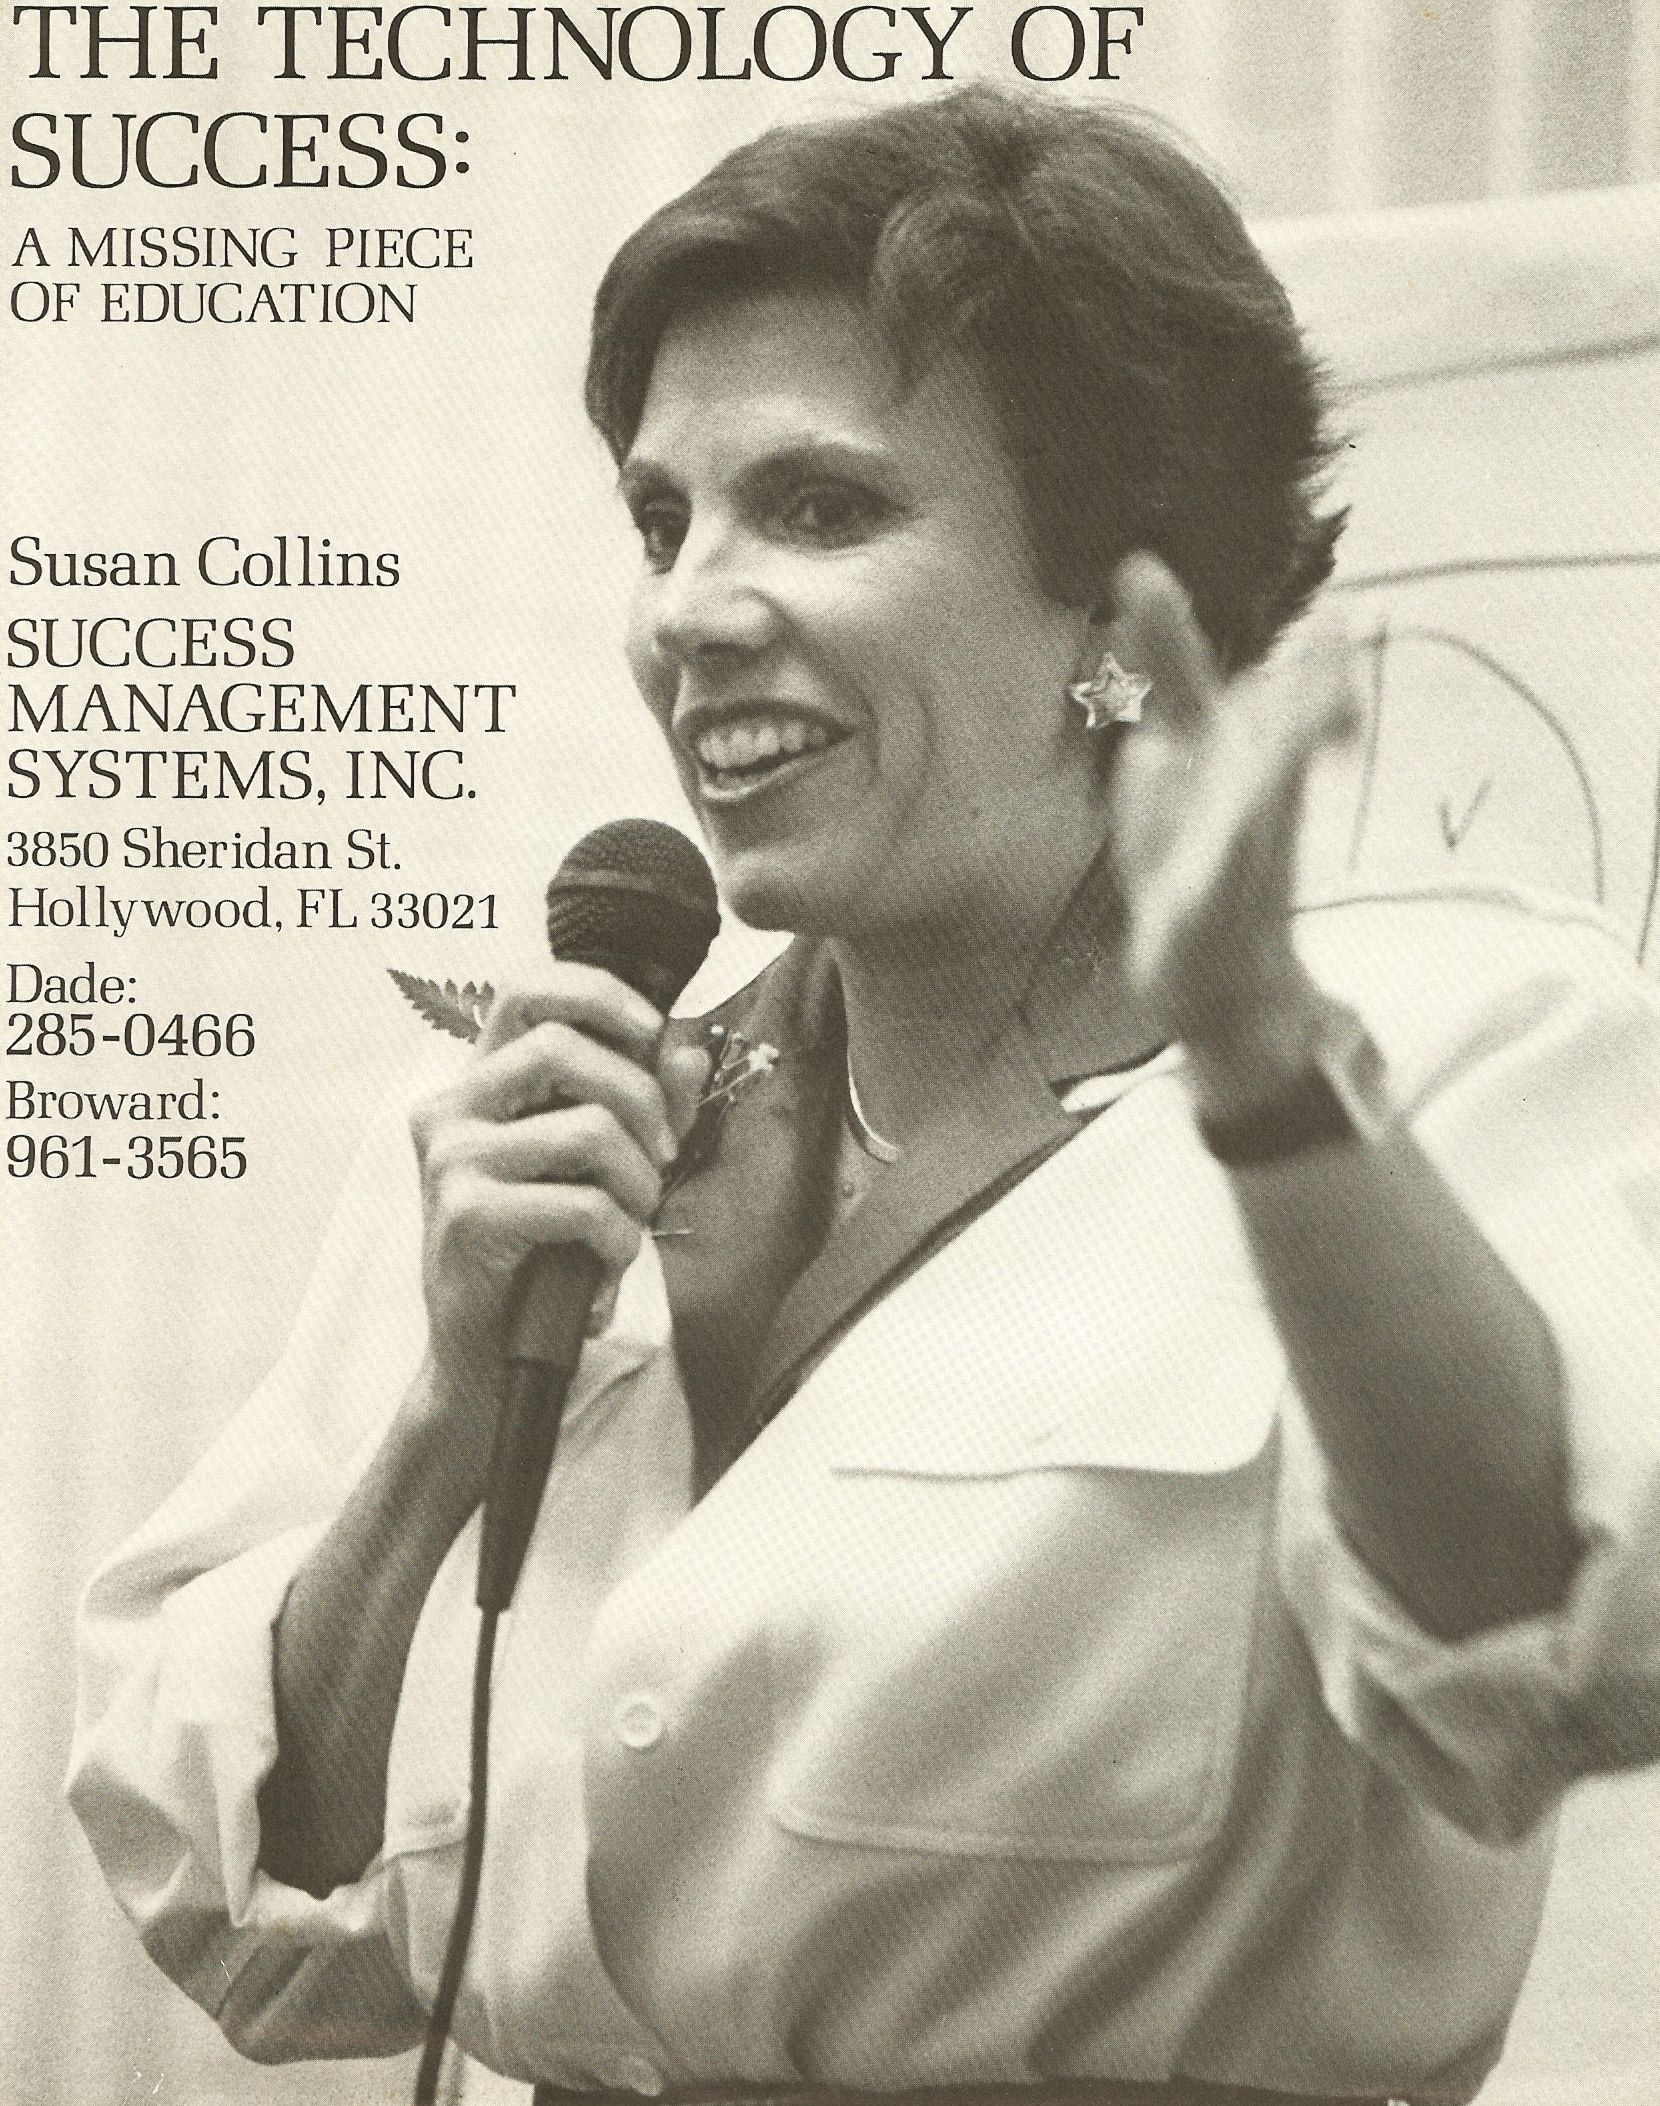 Copy of Susan Ford Collins, creator of The Technology of Success